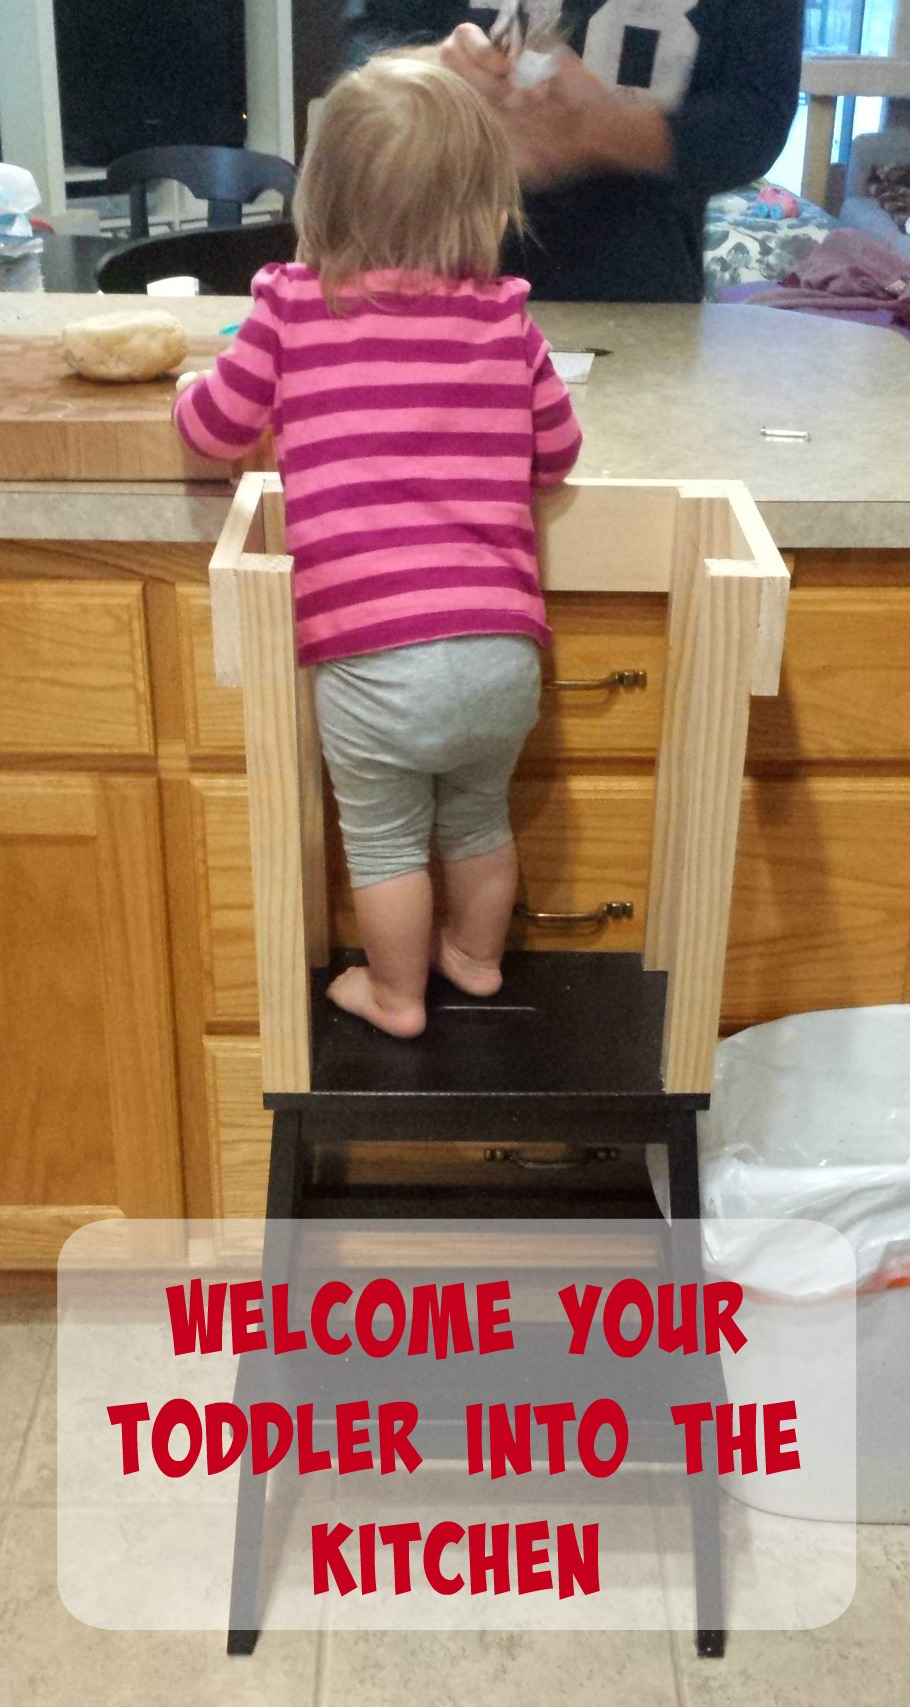 Welcome Your Toddler Into the Kitchen